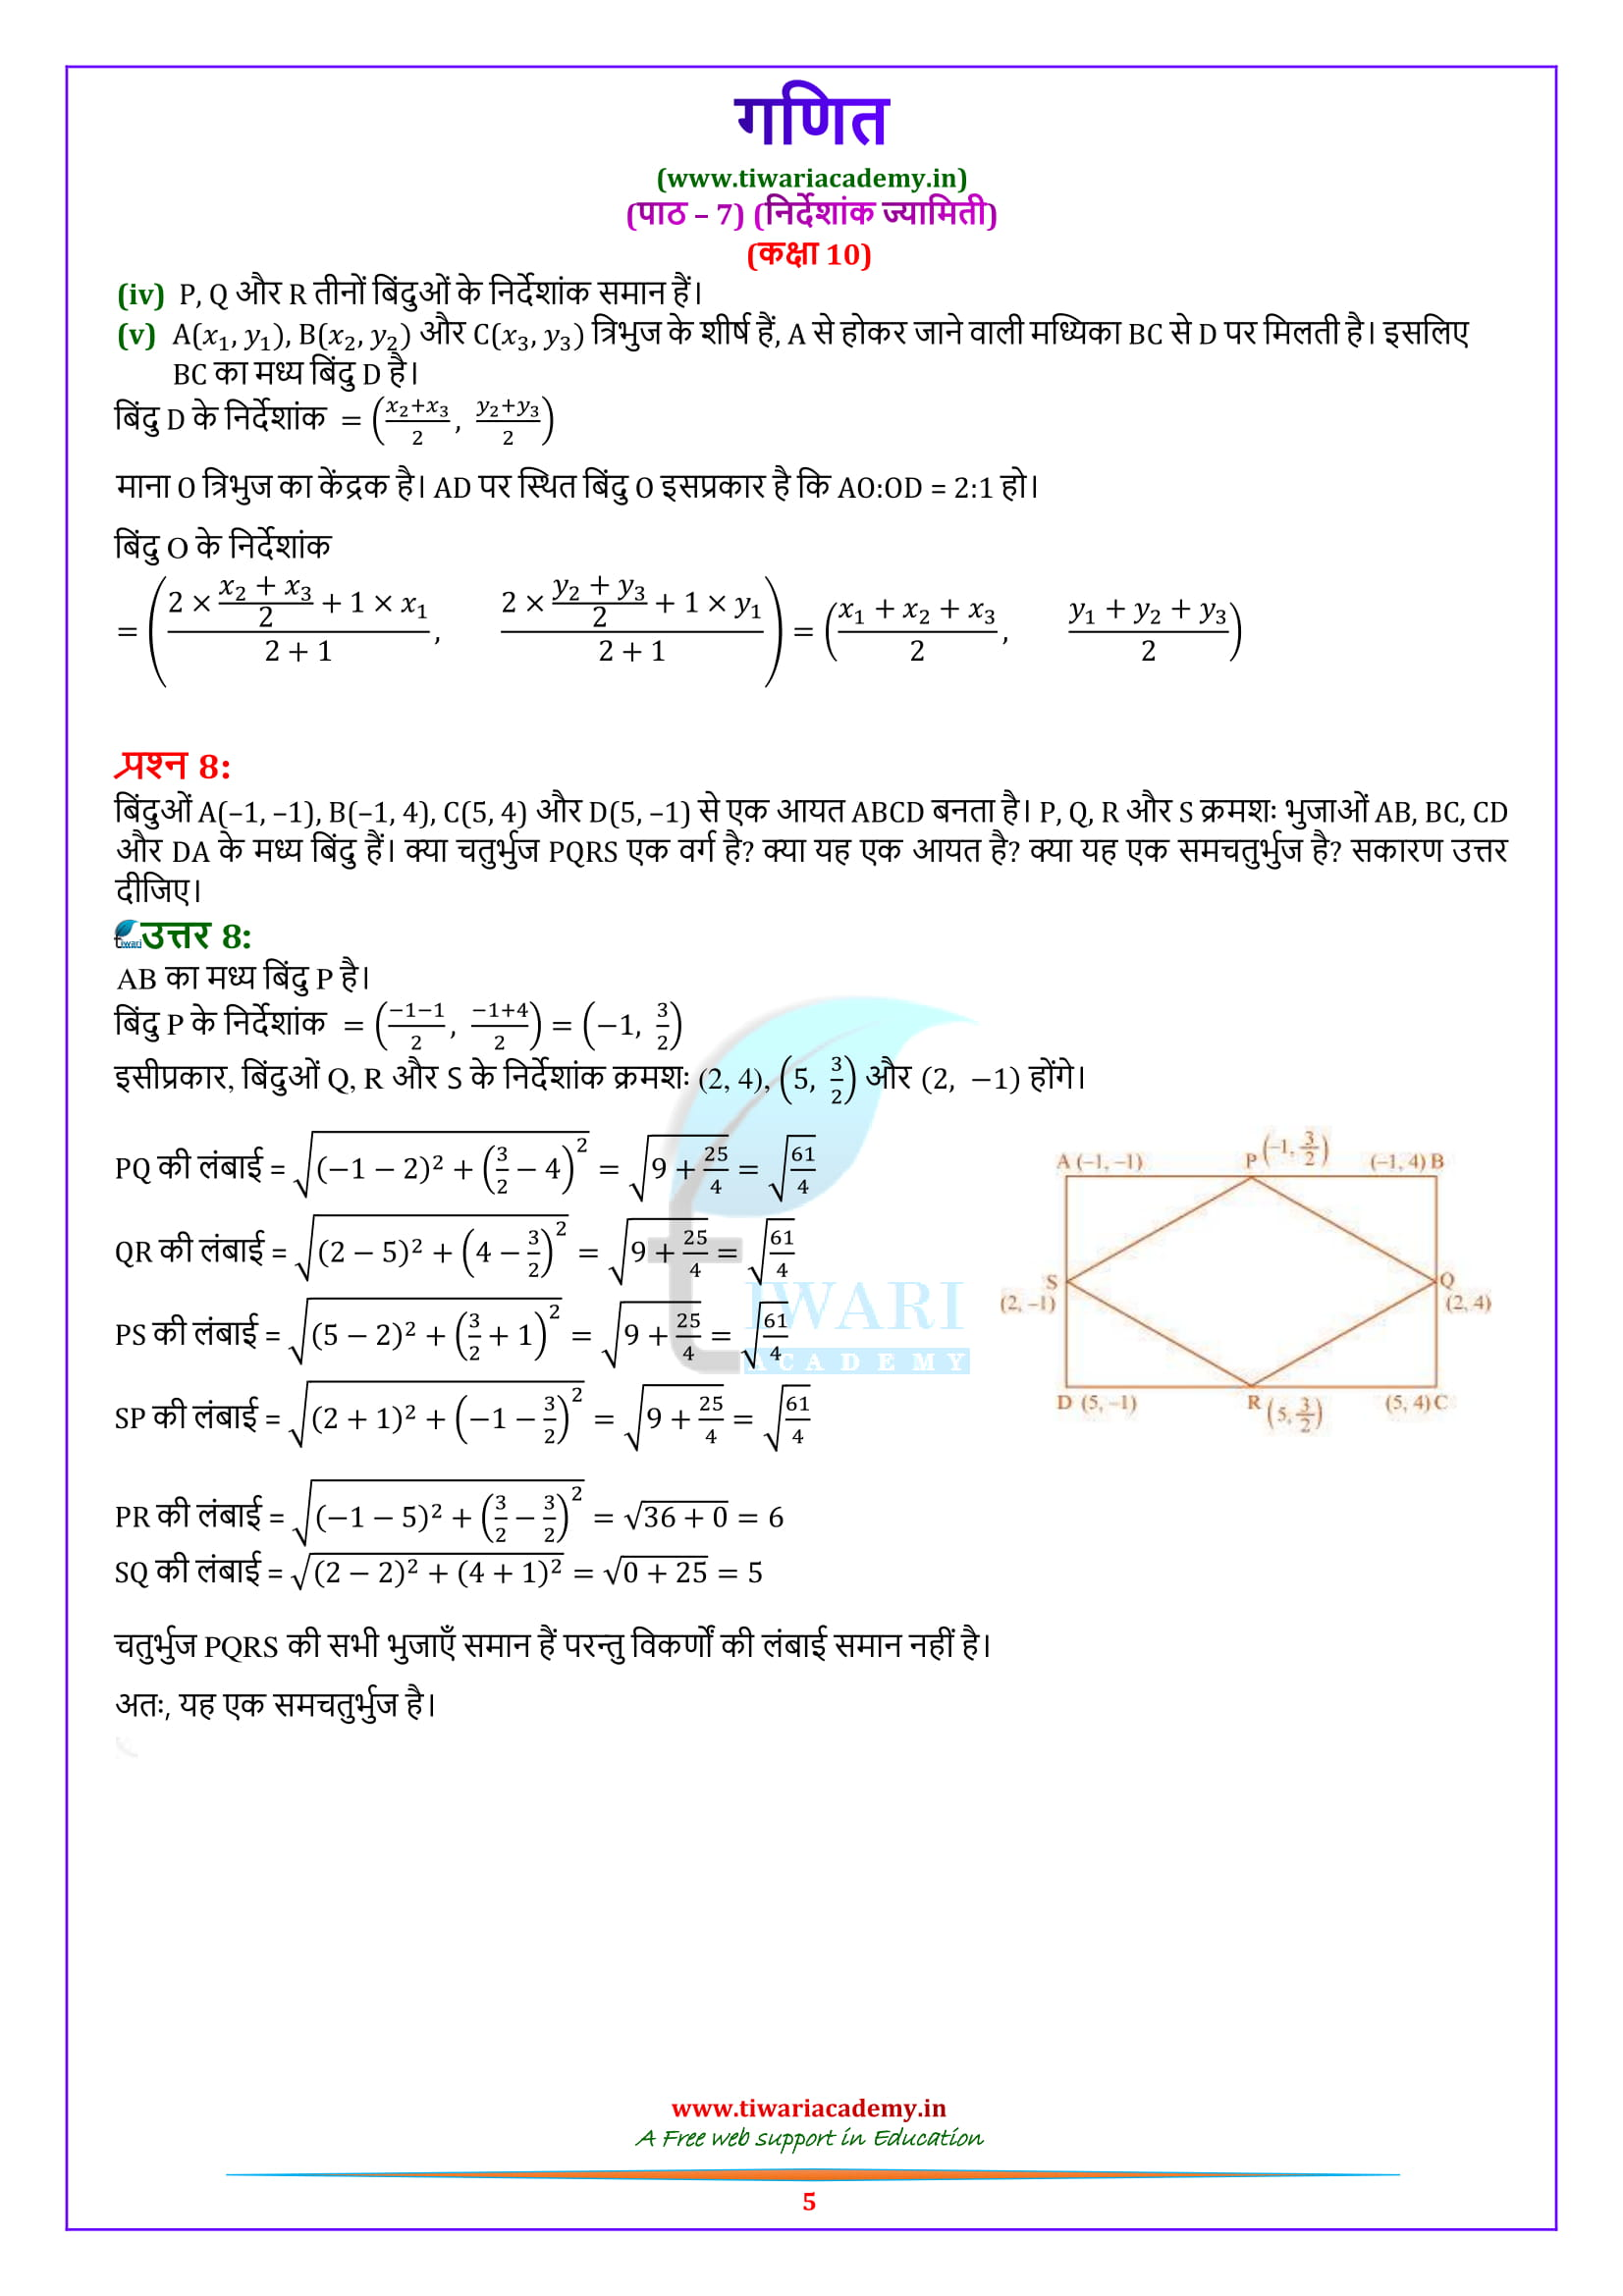 Class 10 Maths Exercise 7.4 Solutions free to download in pdf